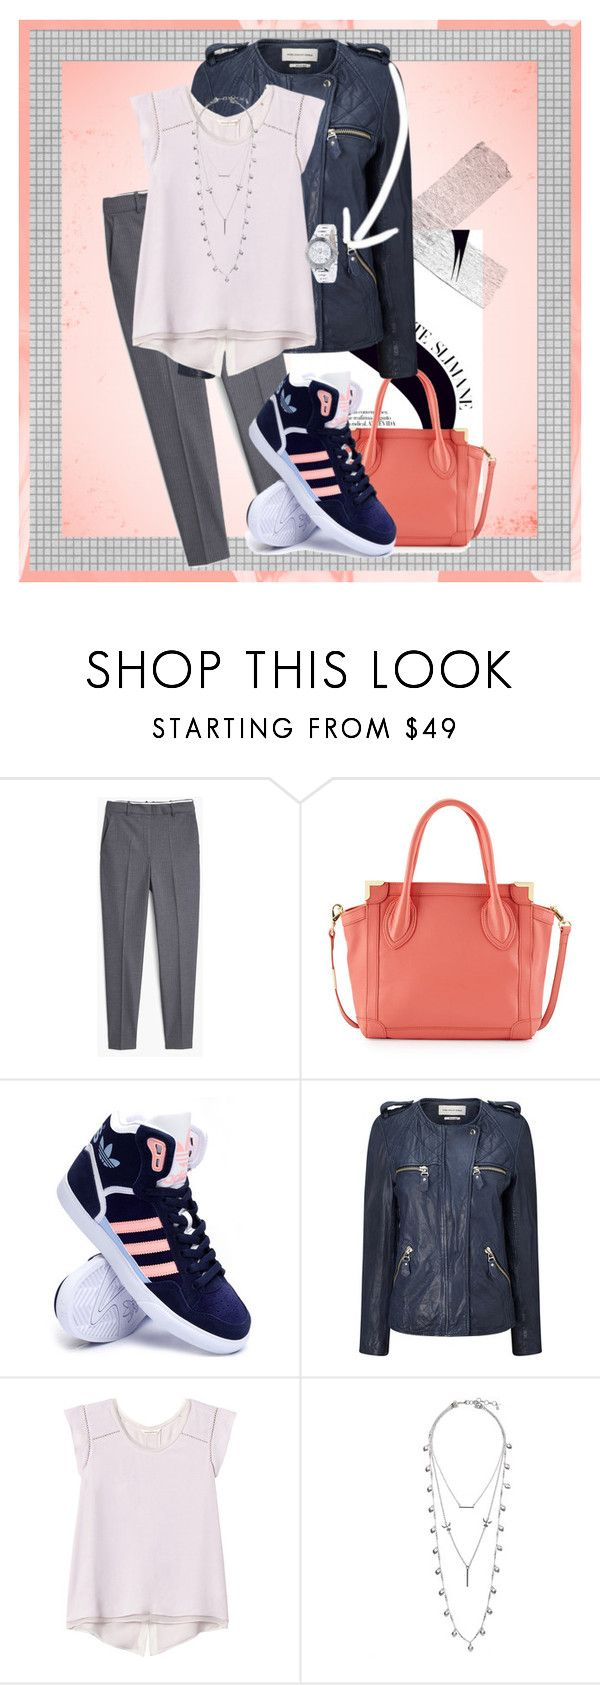 """""""out and about"""" by temptedeli on Polyvore featuring MANGO, Foley + Corinna, adidas, Étoile Isabel Marant, Rebecca Taylor, Lucky Brand, DKNY, women's clothing, women and female"""